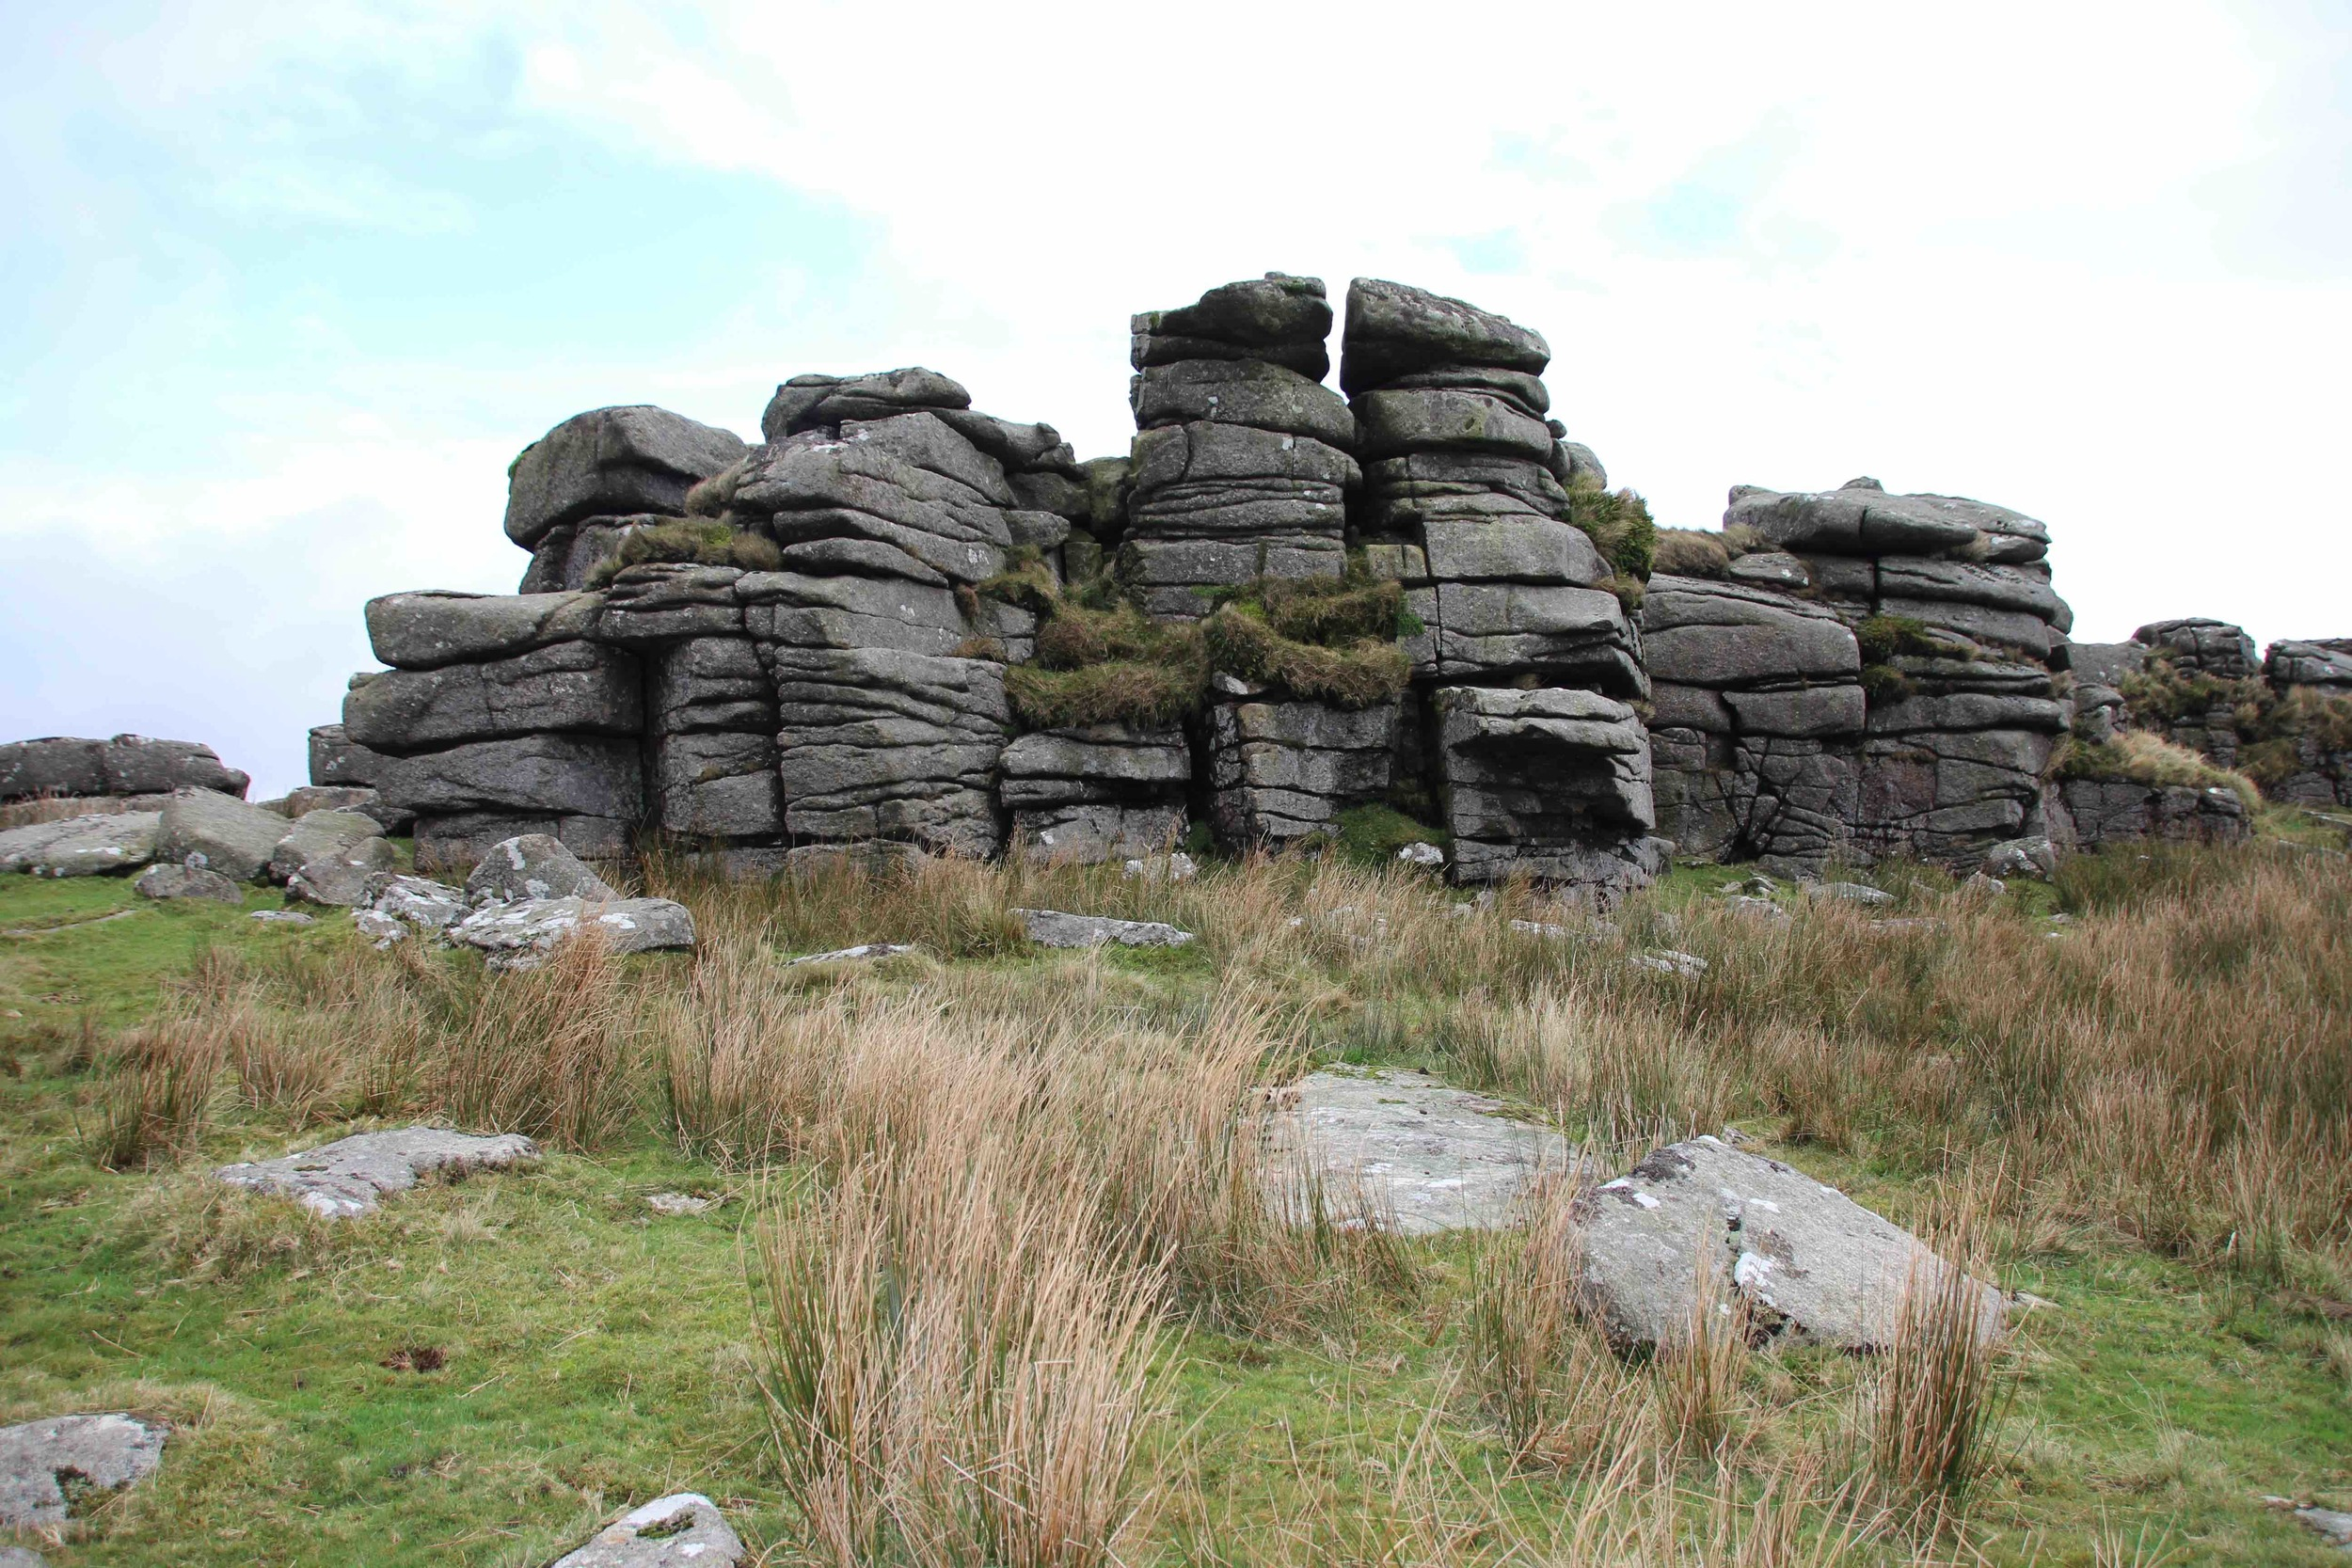 Ger Tor in Dartmoor, Devon, with the granite clitter in the foreground